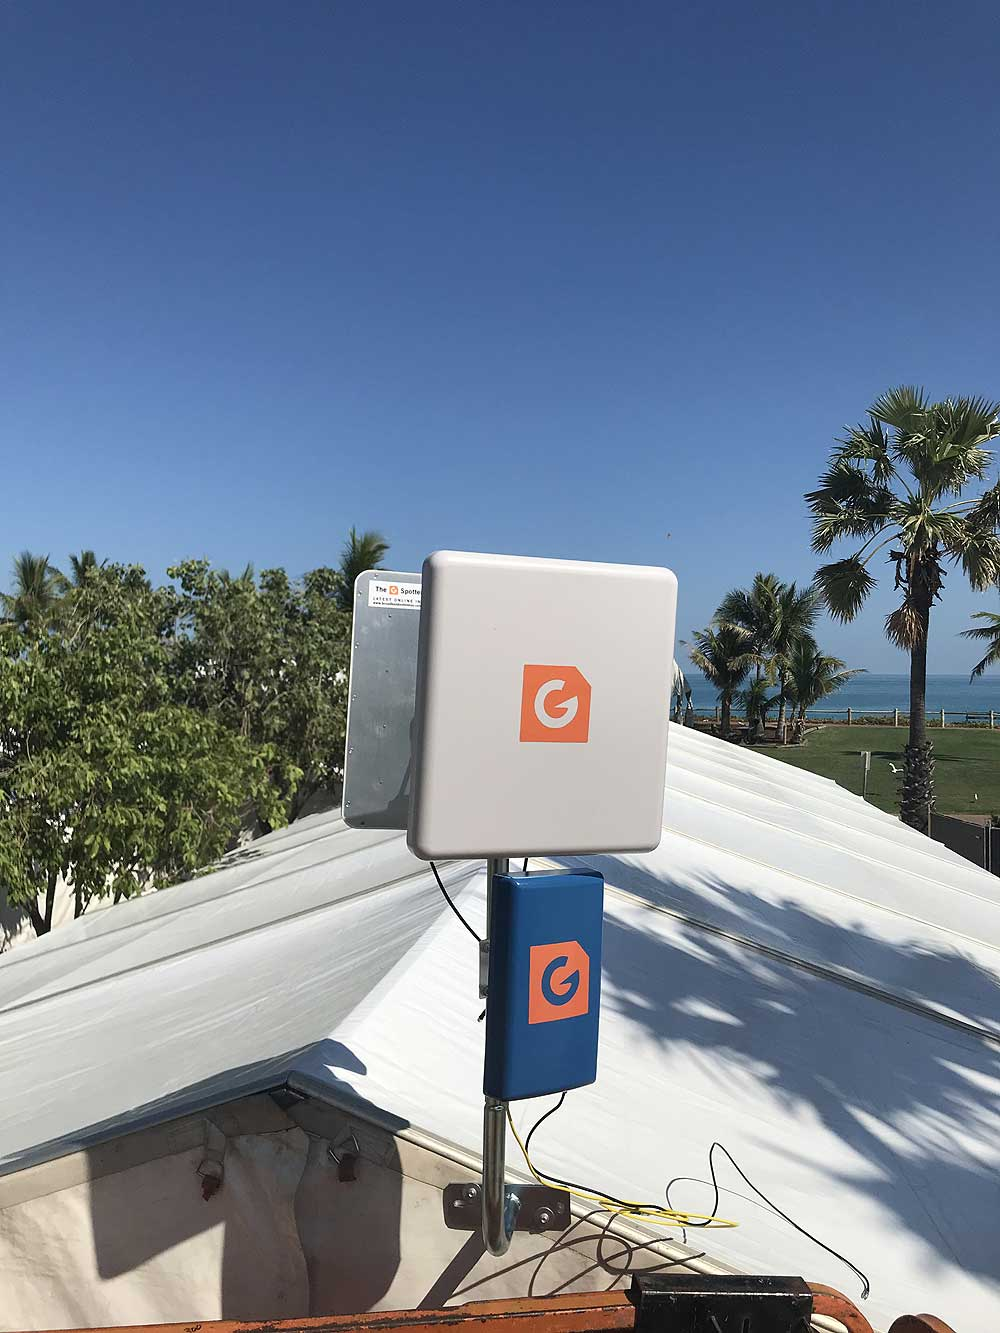 On behalf of the Kimberley Land Council and AIATSIS we would like to express our Gratitude for all your support and professional insight, also for arranging the prompt delivery of the required wireless hardware that supplied connectivity for our event staff and 800 or so delegates. Arun and I were really impressed with the range we were able to receive using the dual high-gain antenna setup Dave and G Spotter Antennas supplied all the necassary Antenna & Cabling Equipment